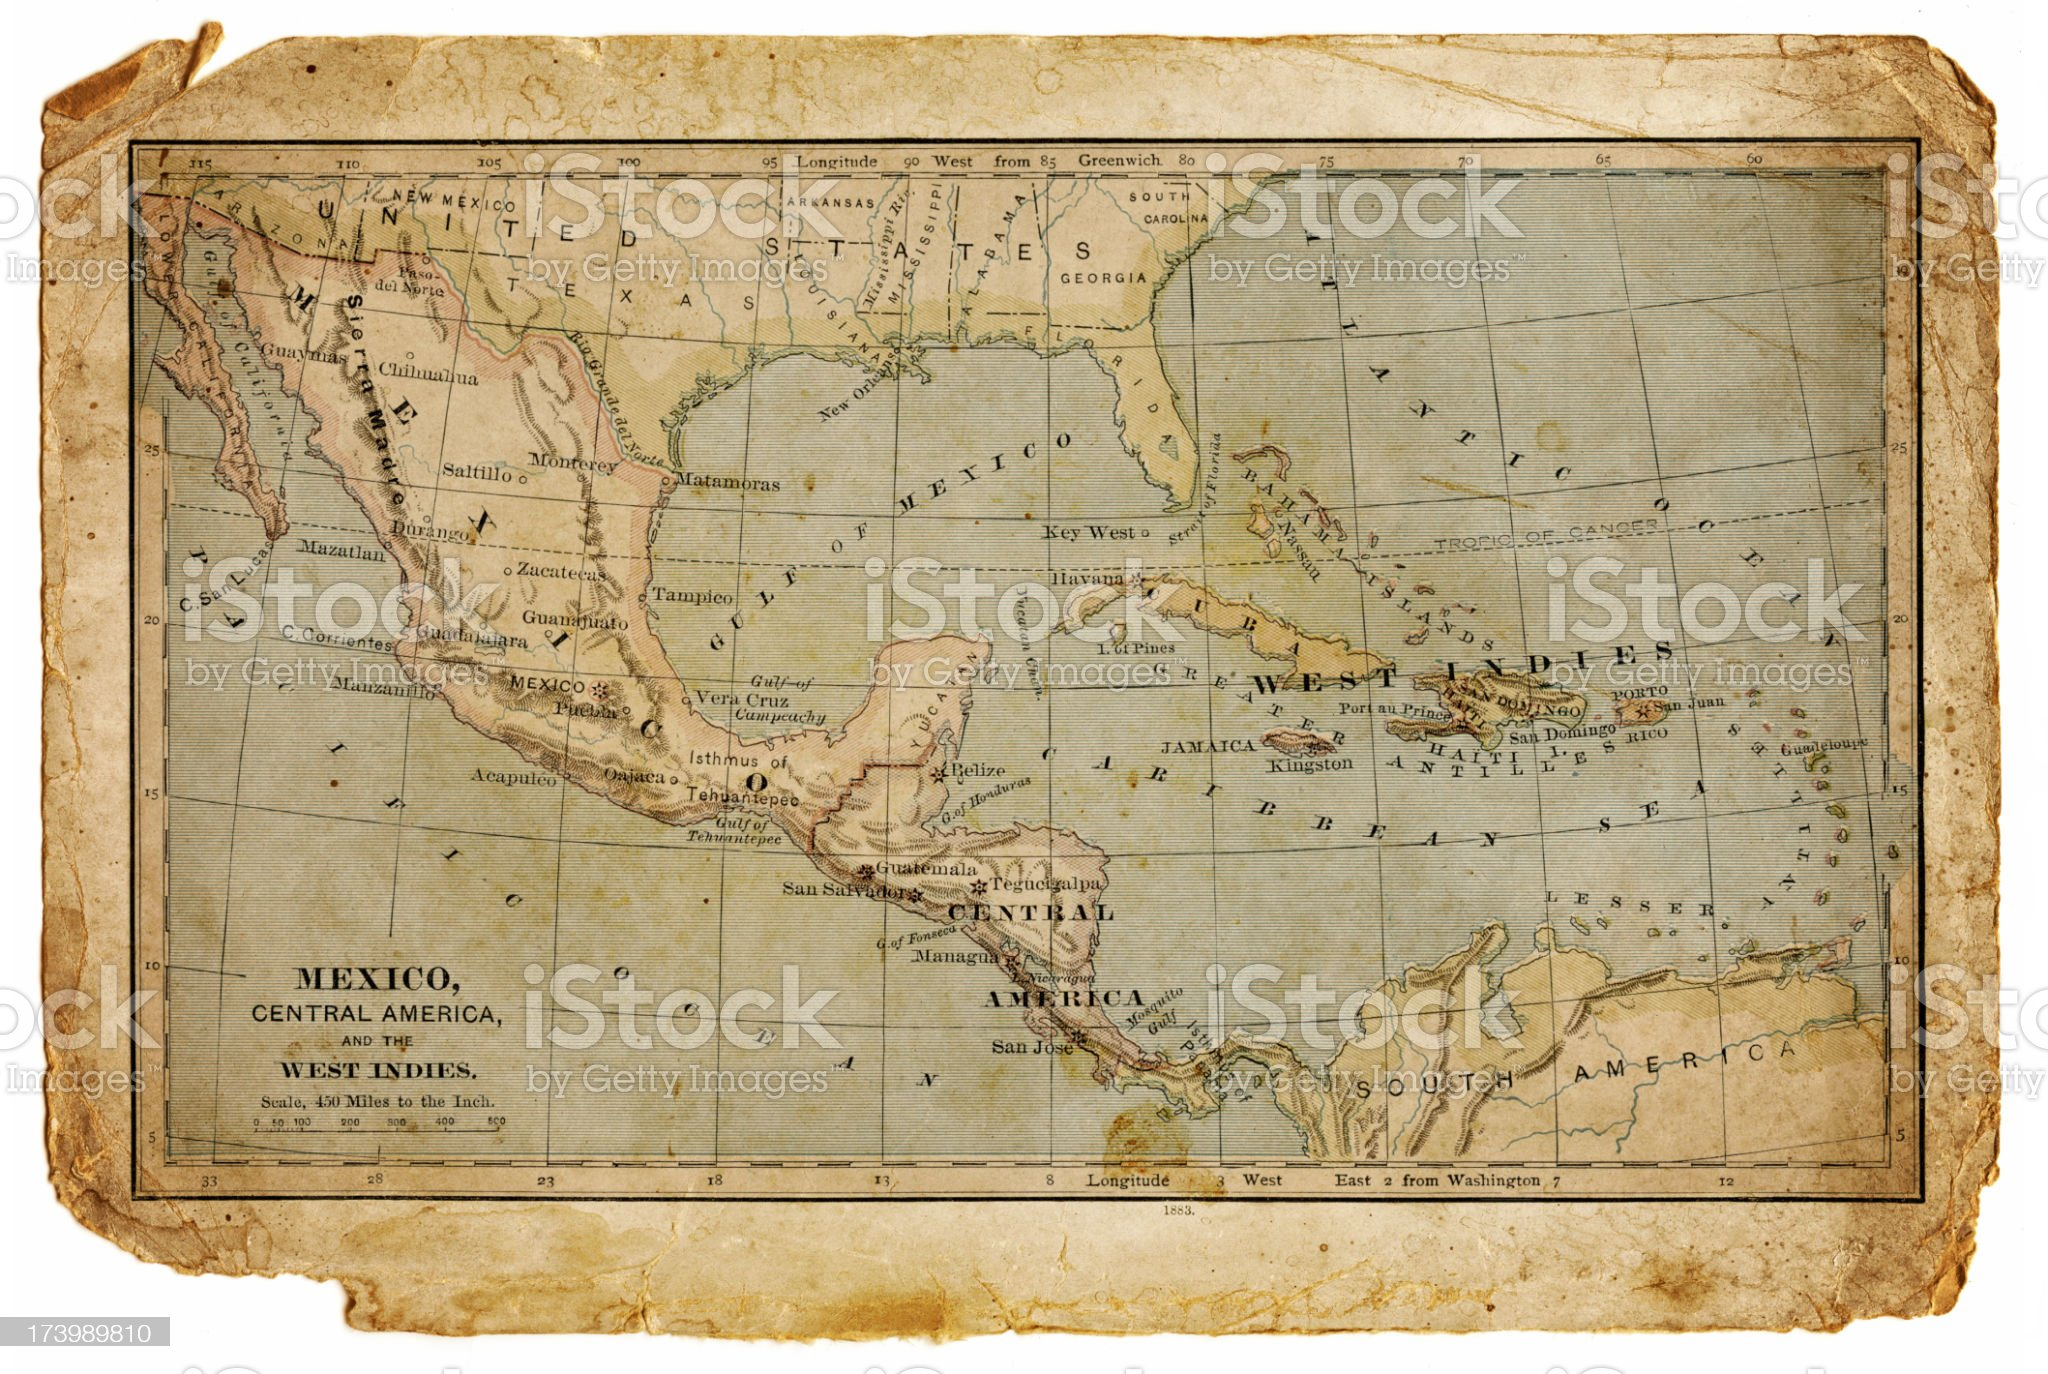 map of mexico, central america and the west indies royalty-free stock vector art